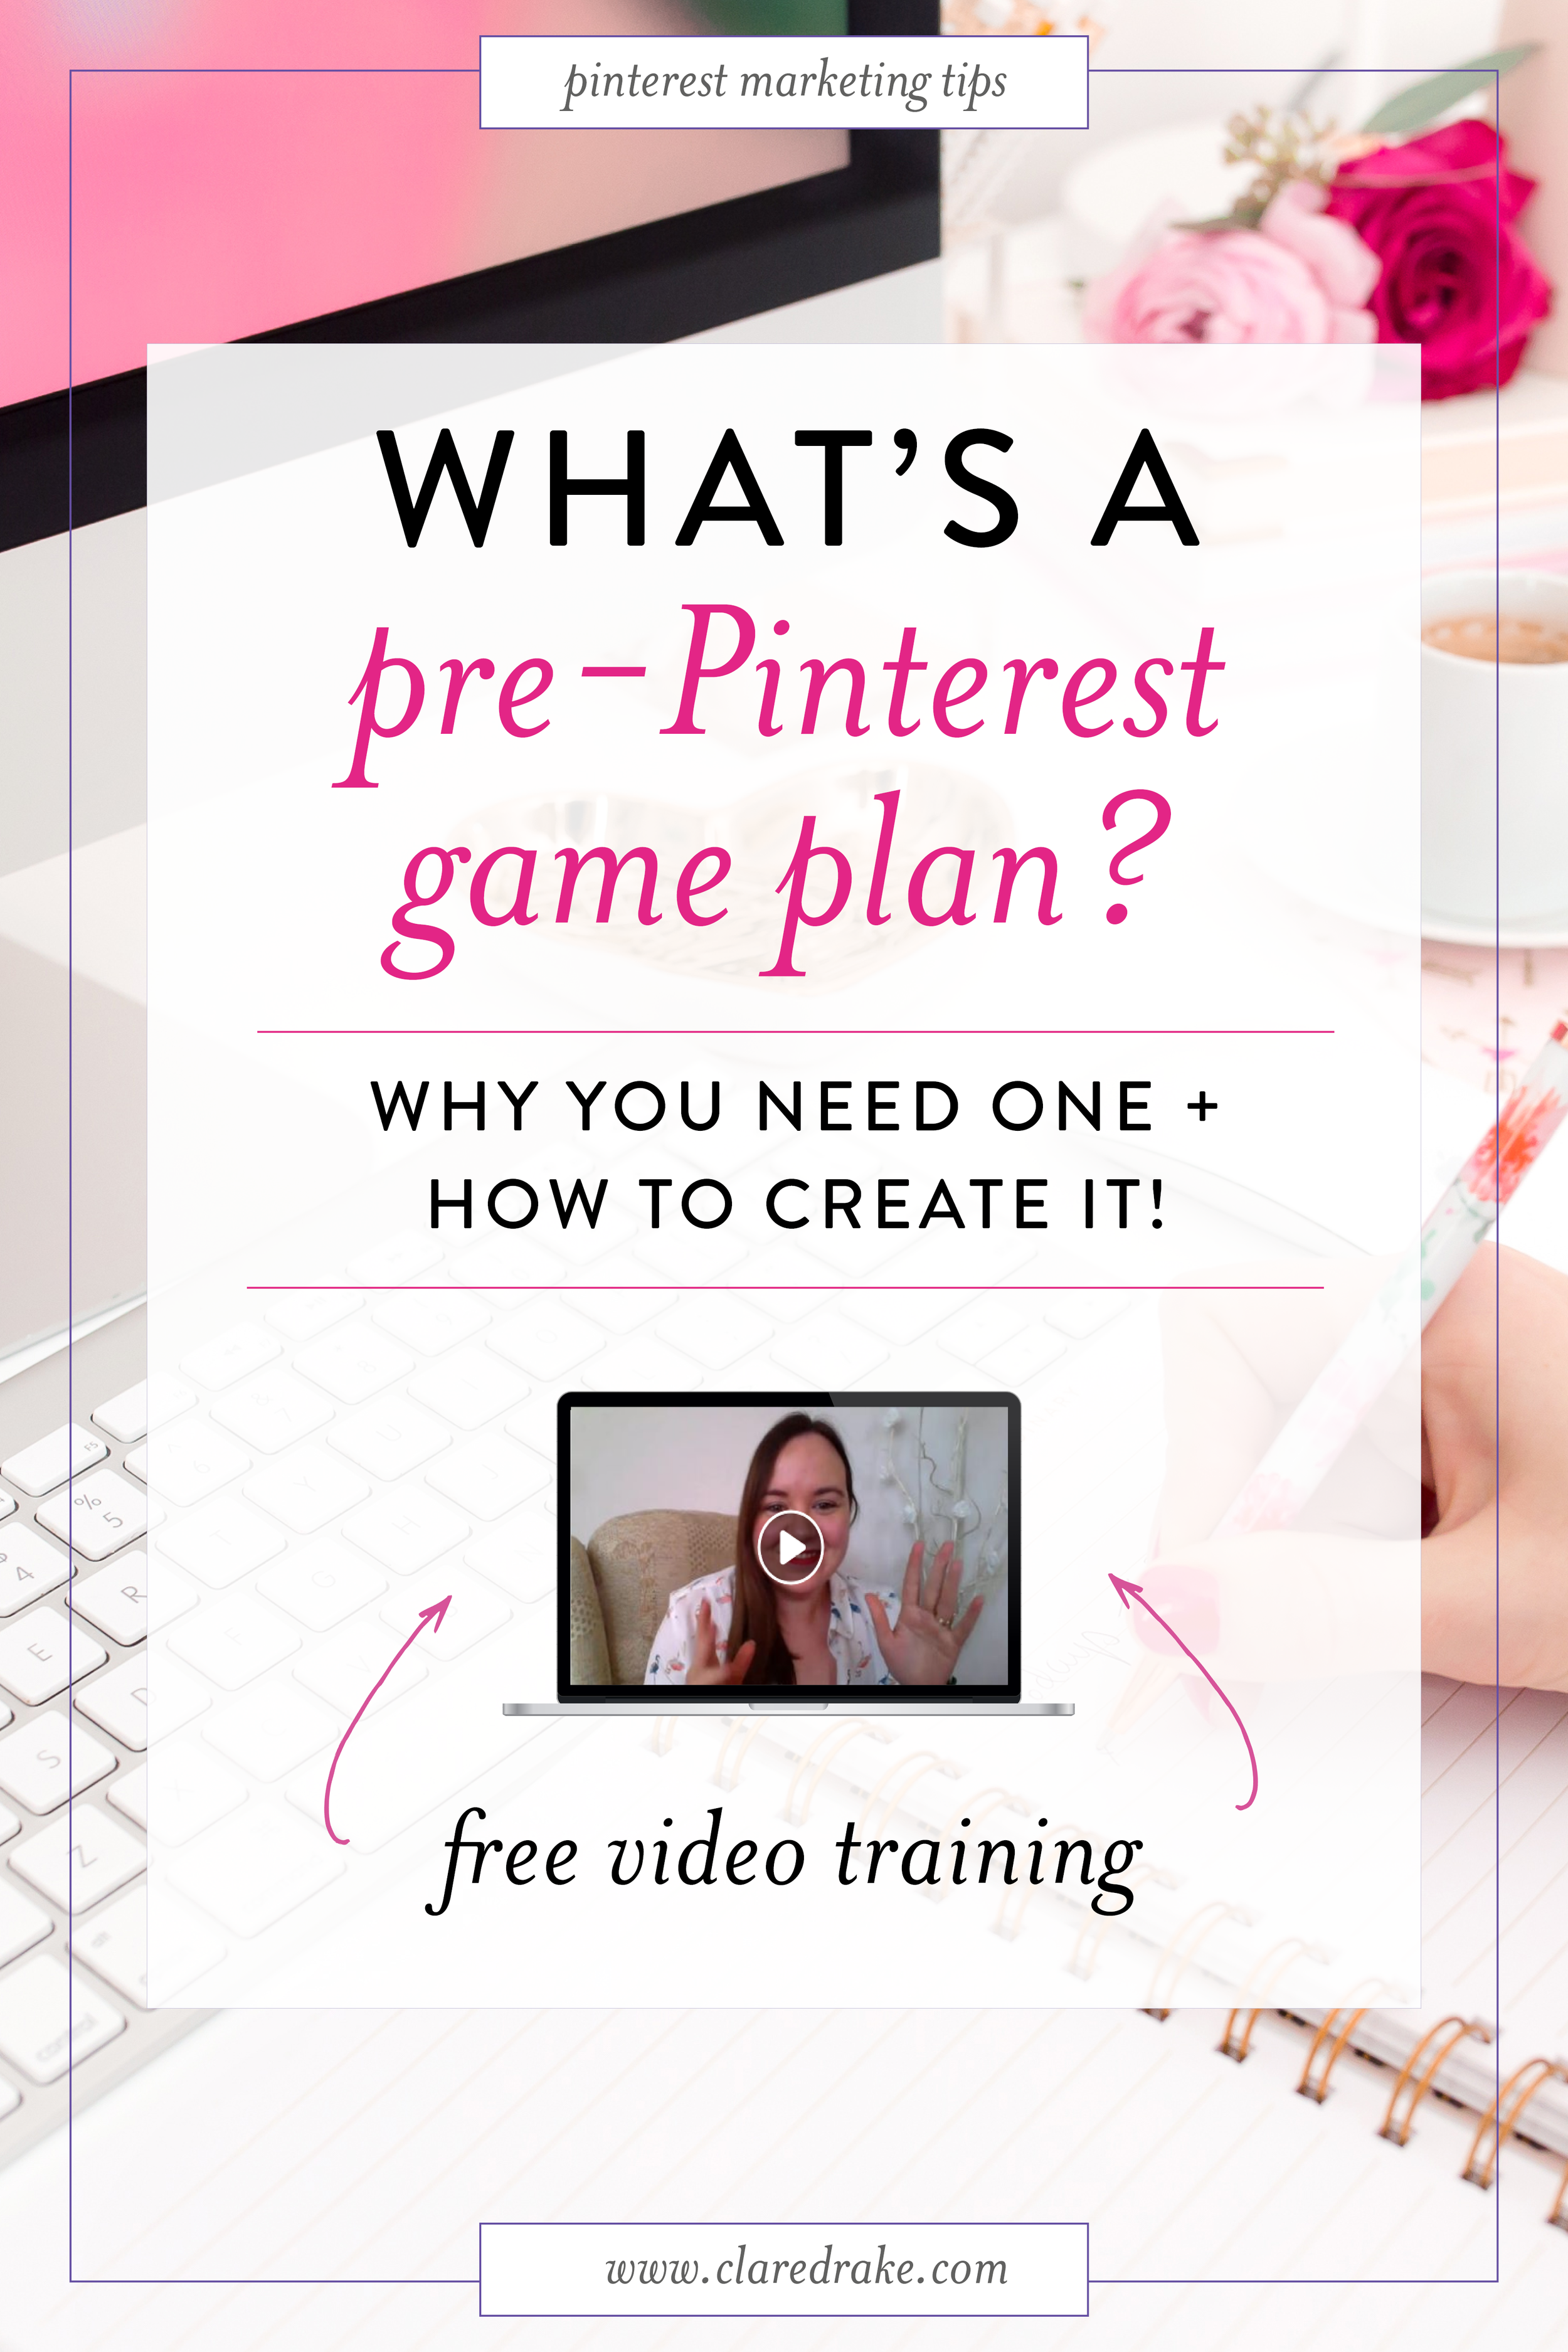 This is the #1 thing you need to do  before  you start using Pinterest for your business - and that is mapping out your Pre-Pinterest Game Plan! Get started now with this free 10 minute training! #pinterestforyourbusiness #pinterestmarketing #pinteresttips #pinterestforbusinesstips #pinterestgameplan #pintereststrategy